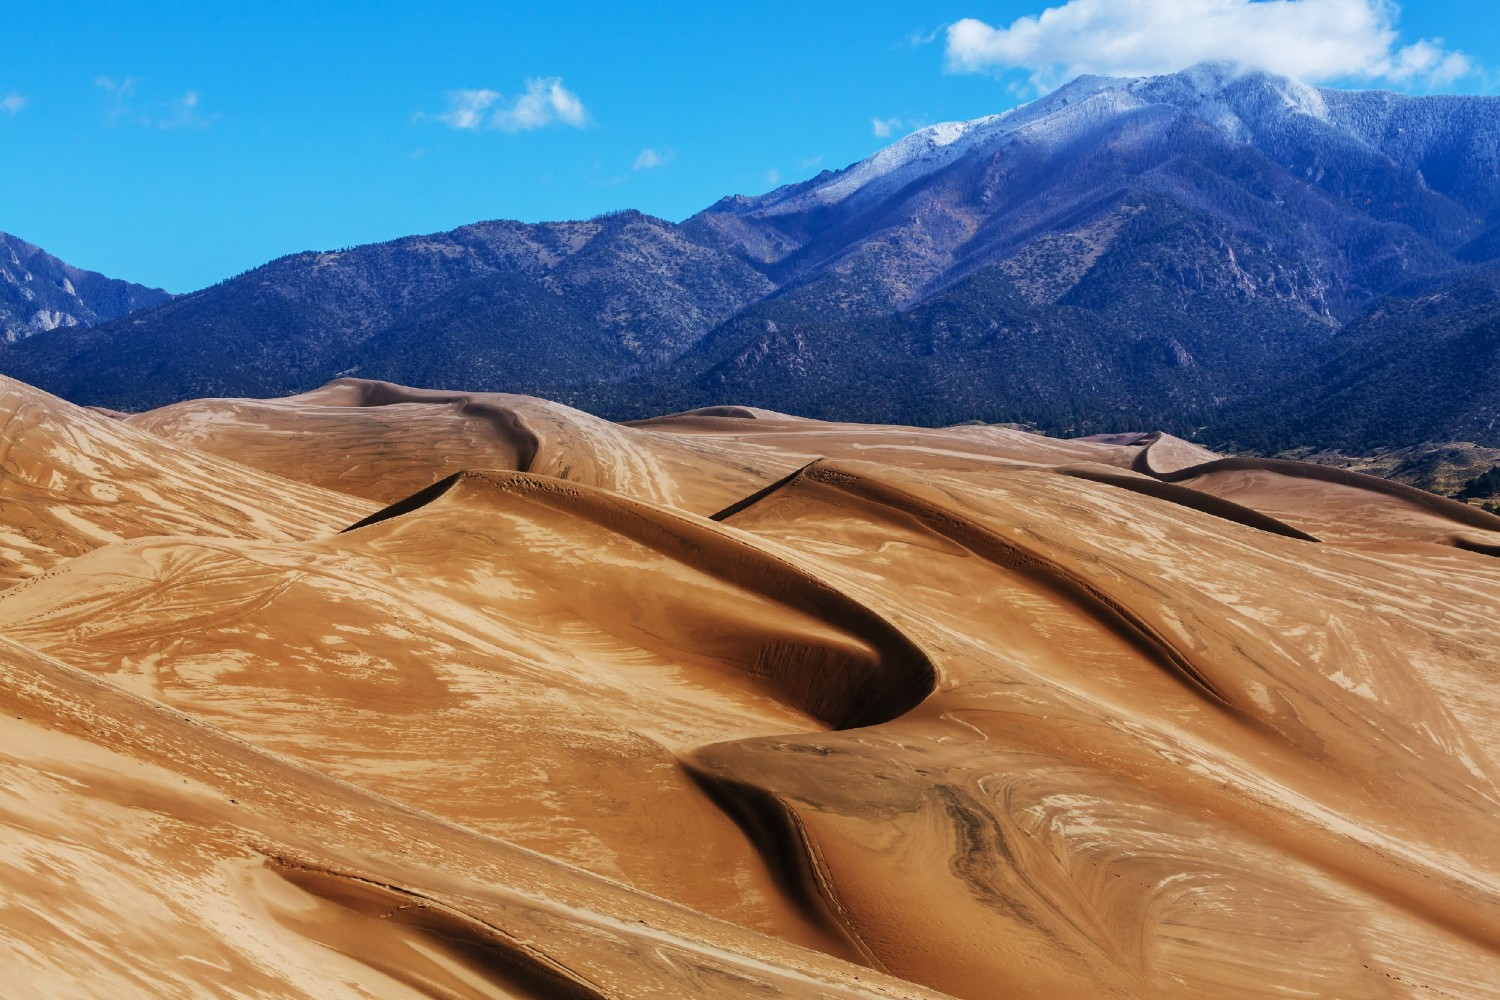 The dunes in Great Sand Dunes National Park in Colorado.